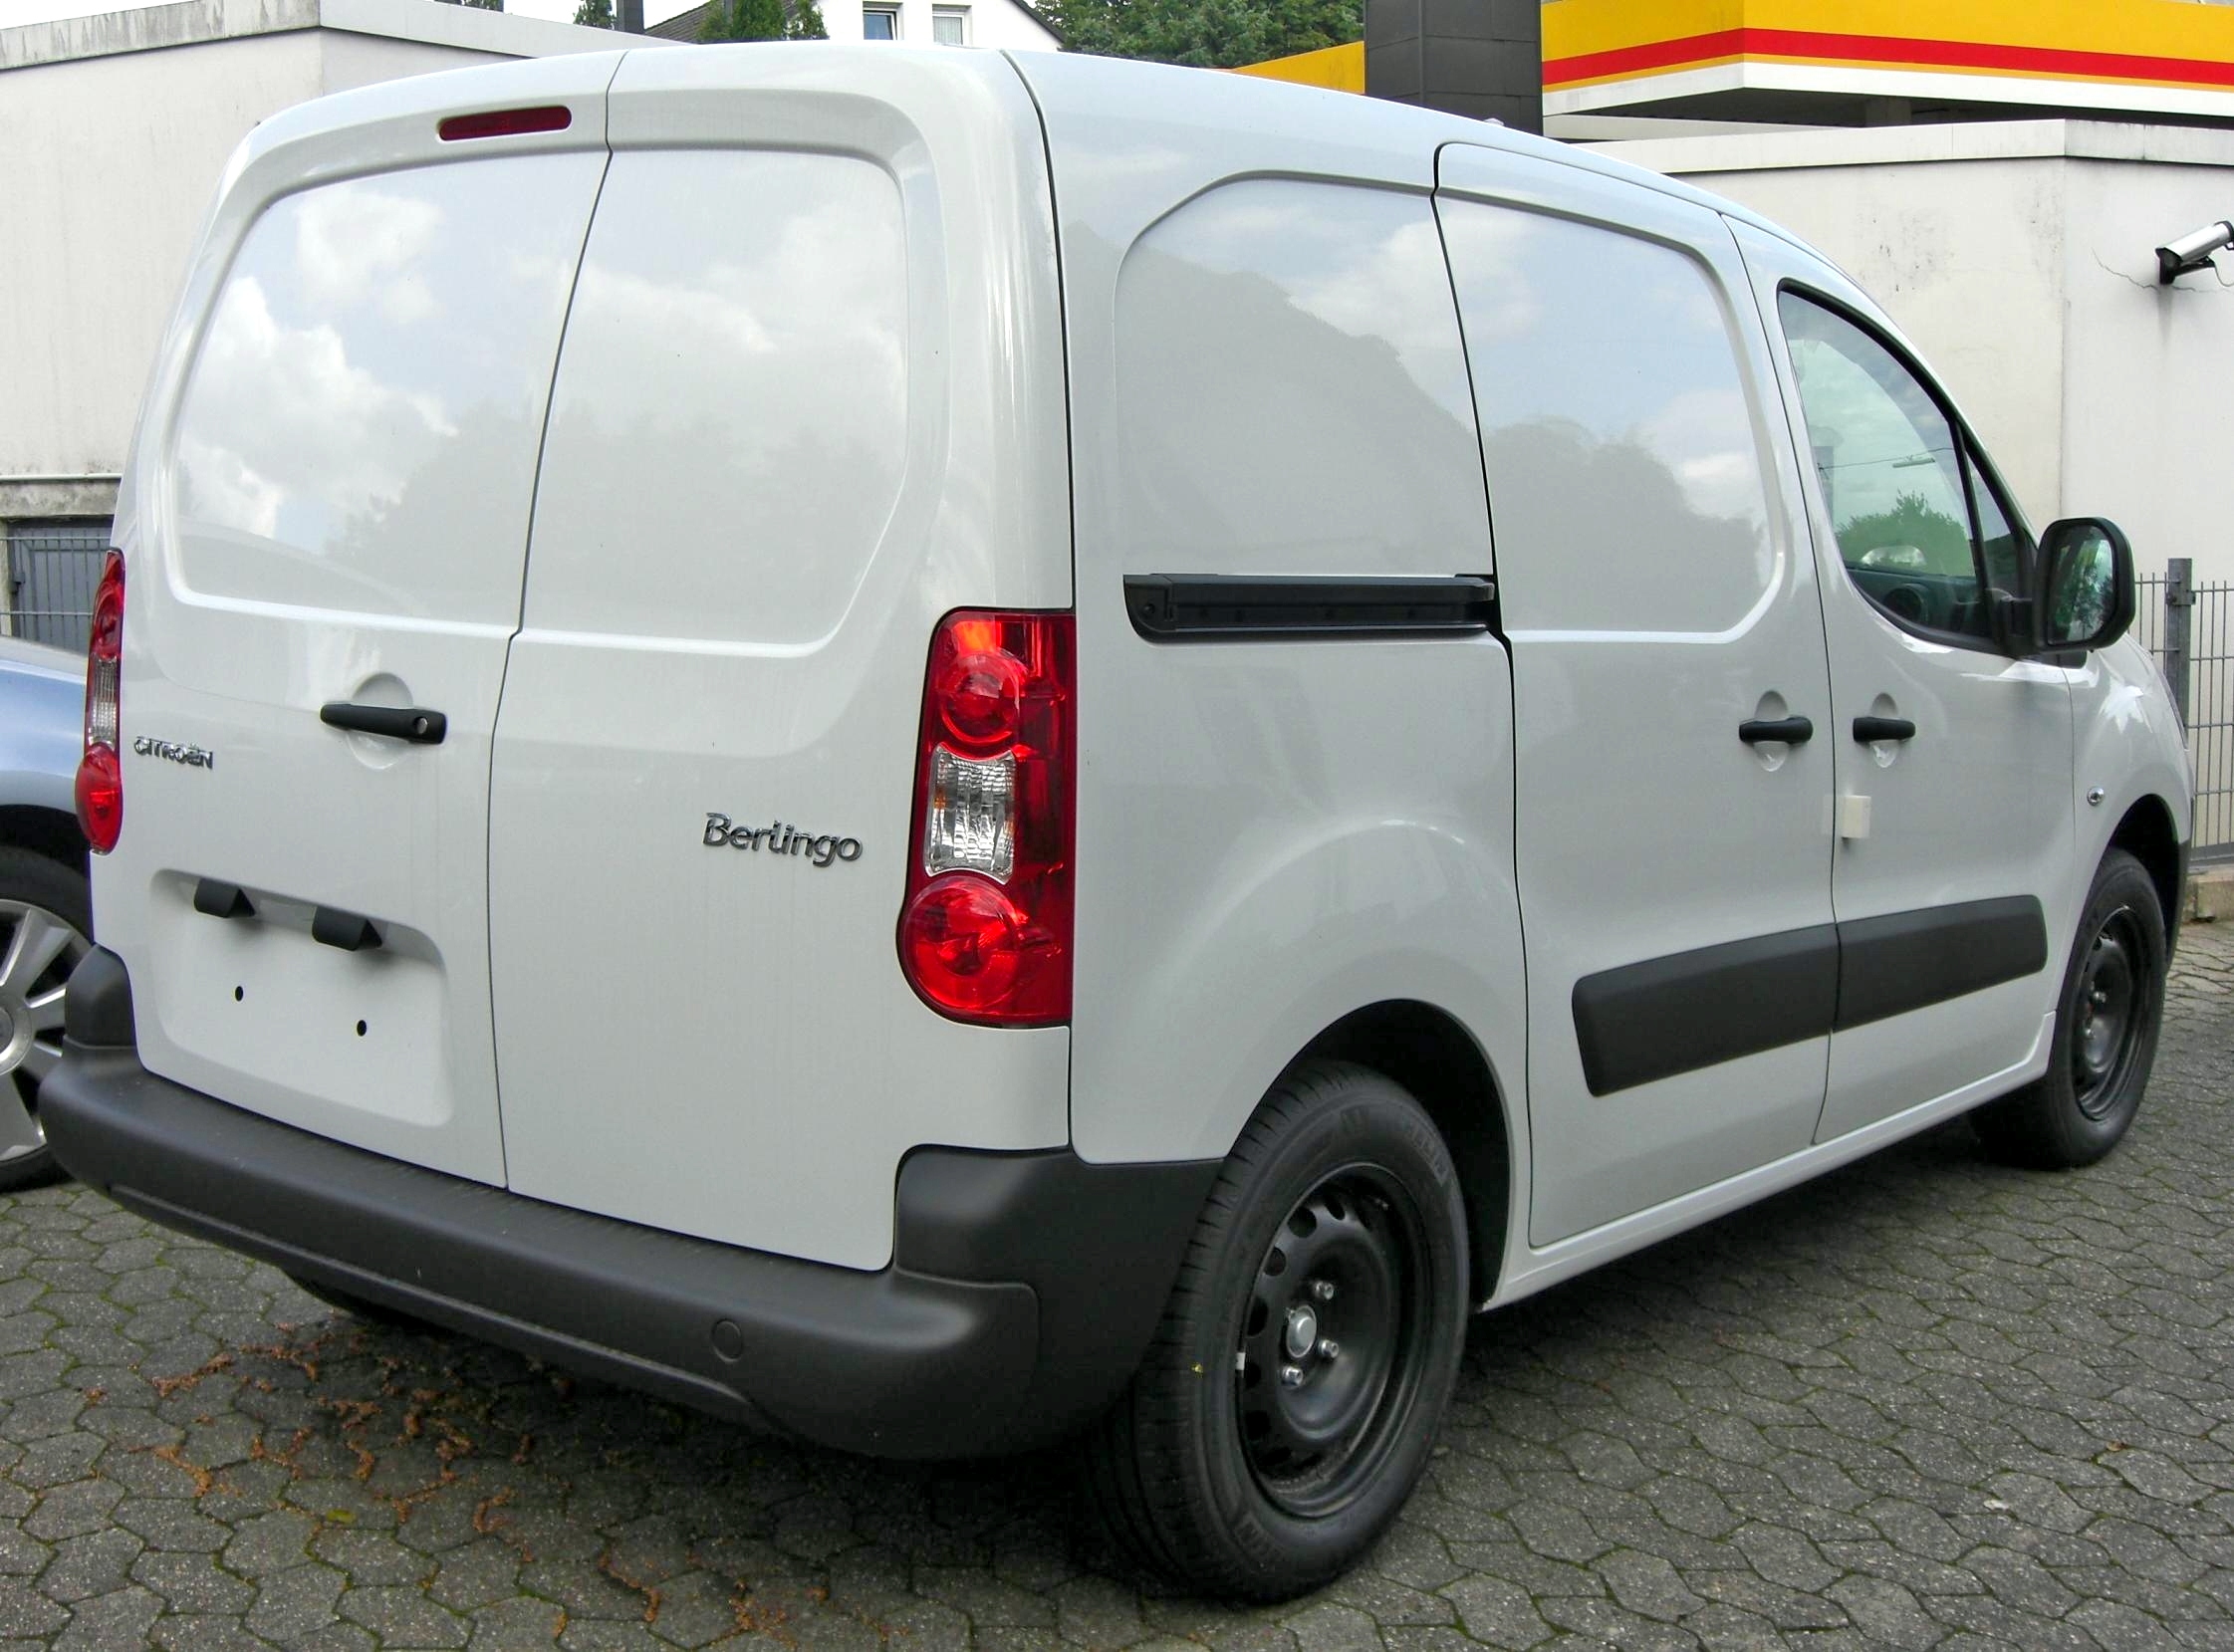 Citroen Berlingo Lease, Berlingo Leasing, Berlingo Contract Hire